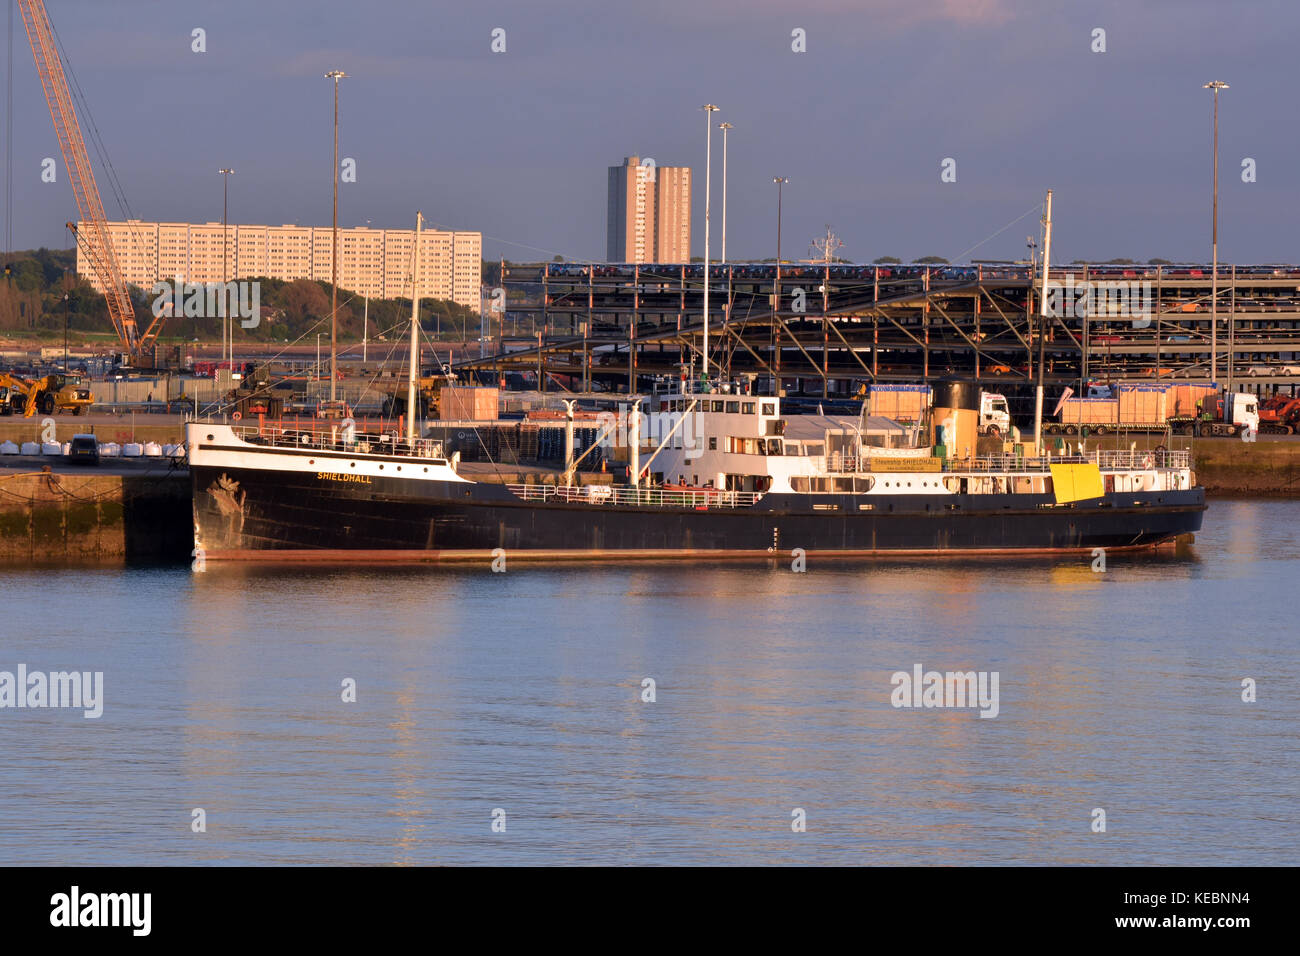 the steamship shieldhall alongside the docks or harbour at Southampton port owned by ABP on Southampton water in - Stock Image